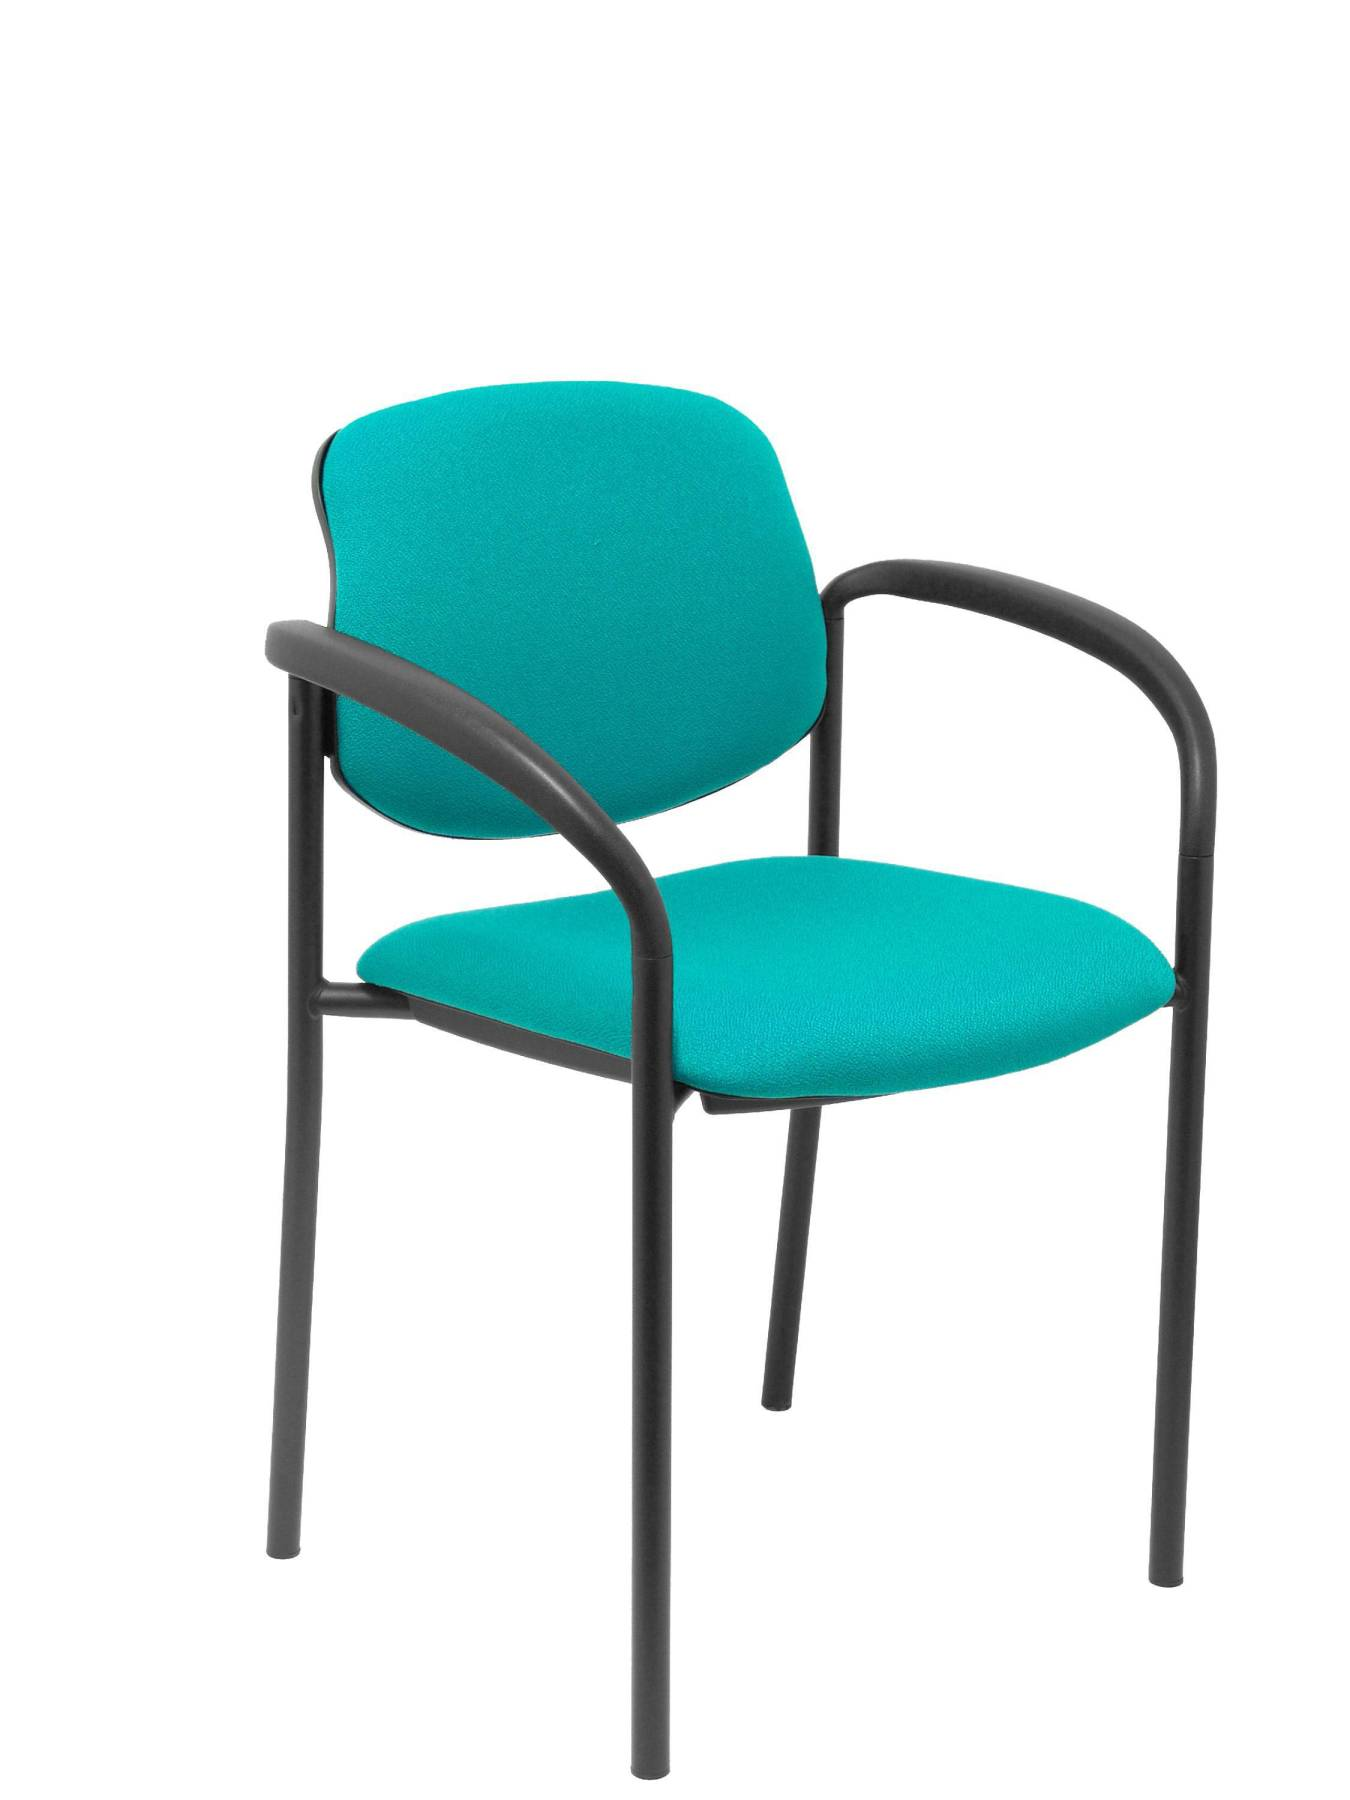 Visitor Chair 4's Topsy, With Arms And Estructrua Negro-up Seat And Backstop Upholstered In BALI Tissue Green Color PIQ